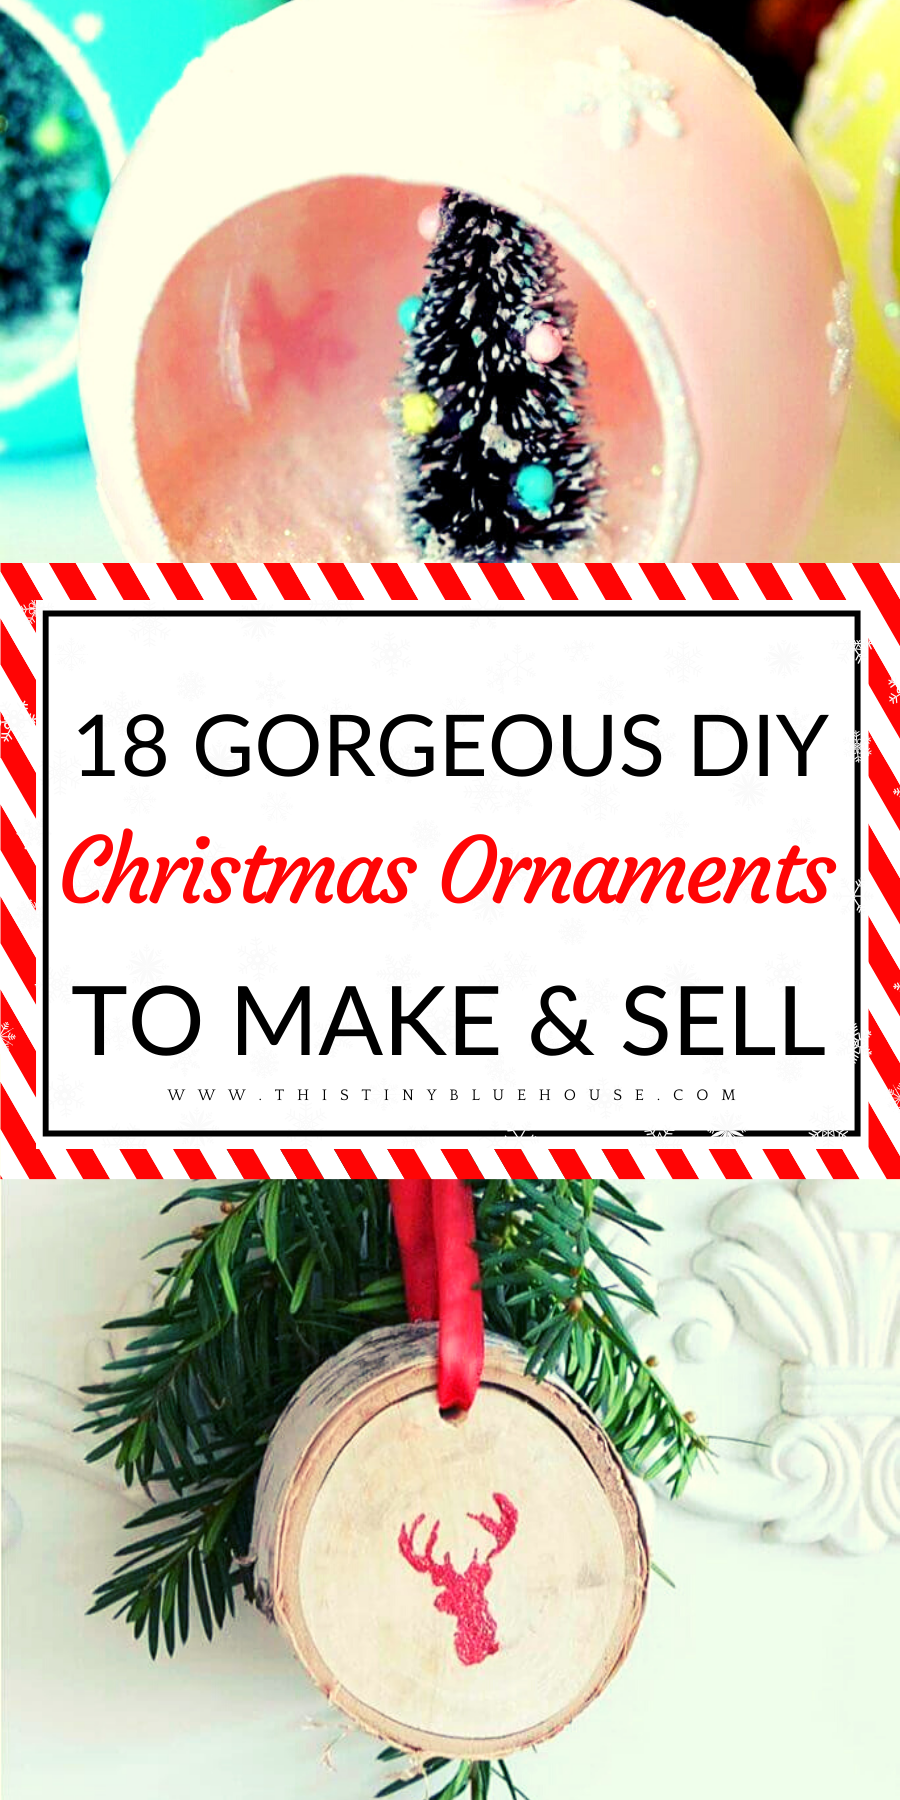 18 DIY Christmas Ornaments To Make And Sell (With images